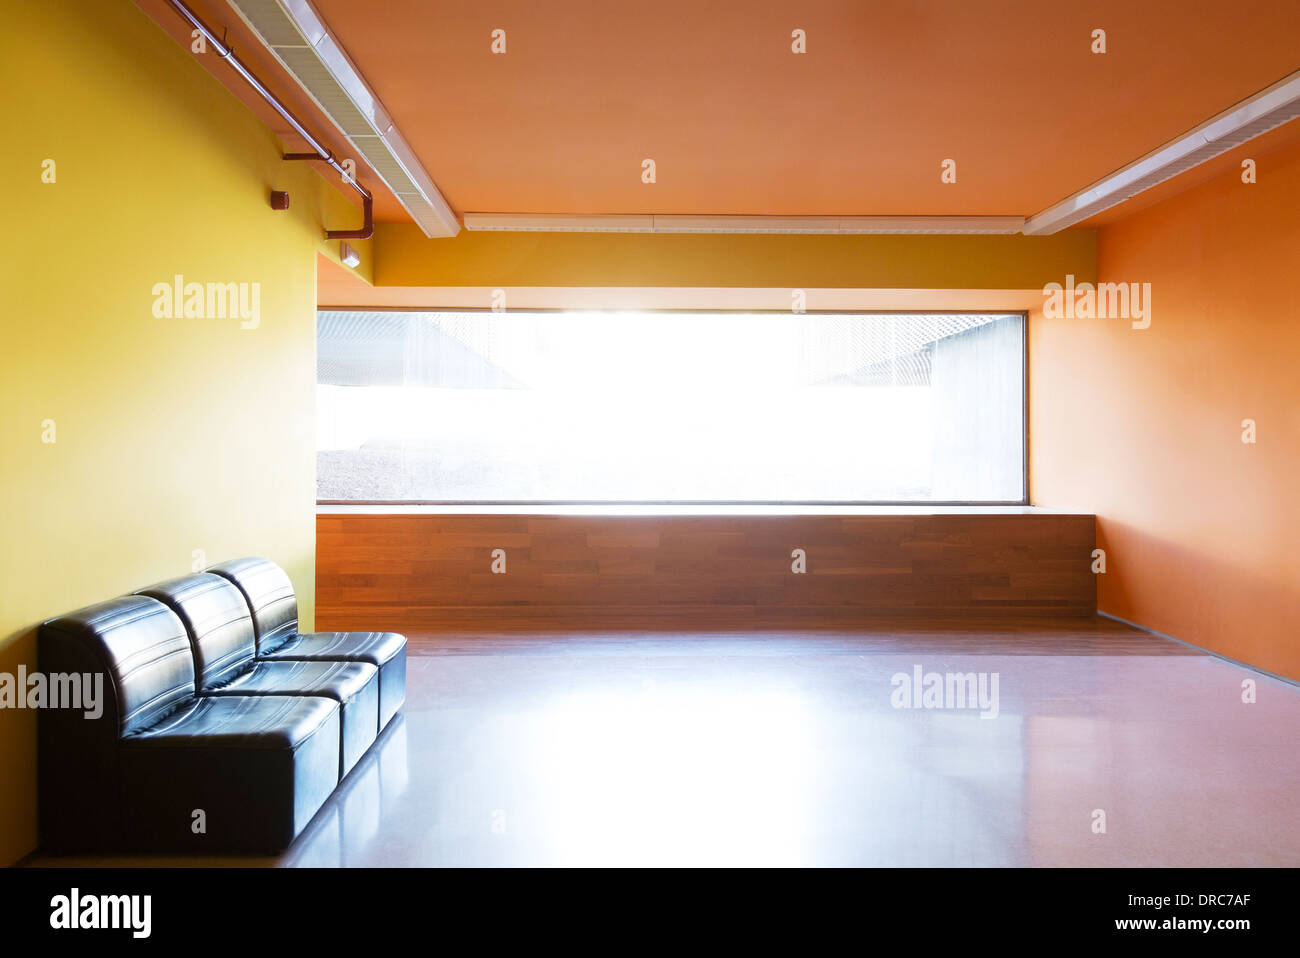 Chairs and window in empty lobby - Stock Image